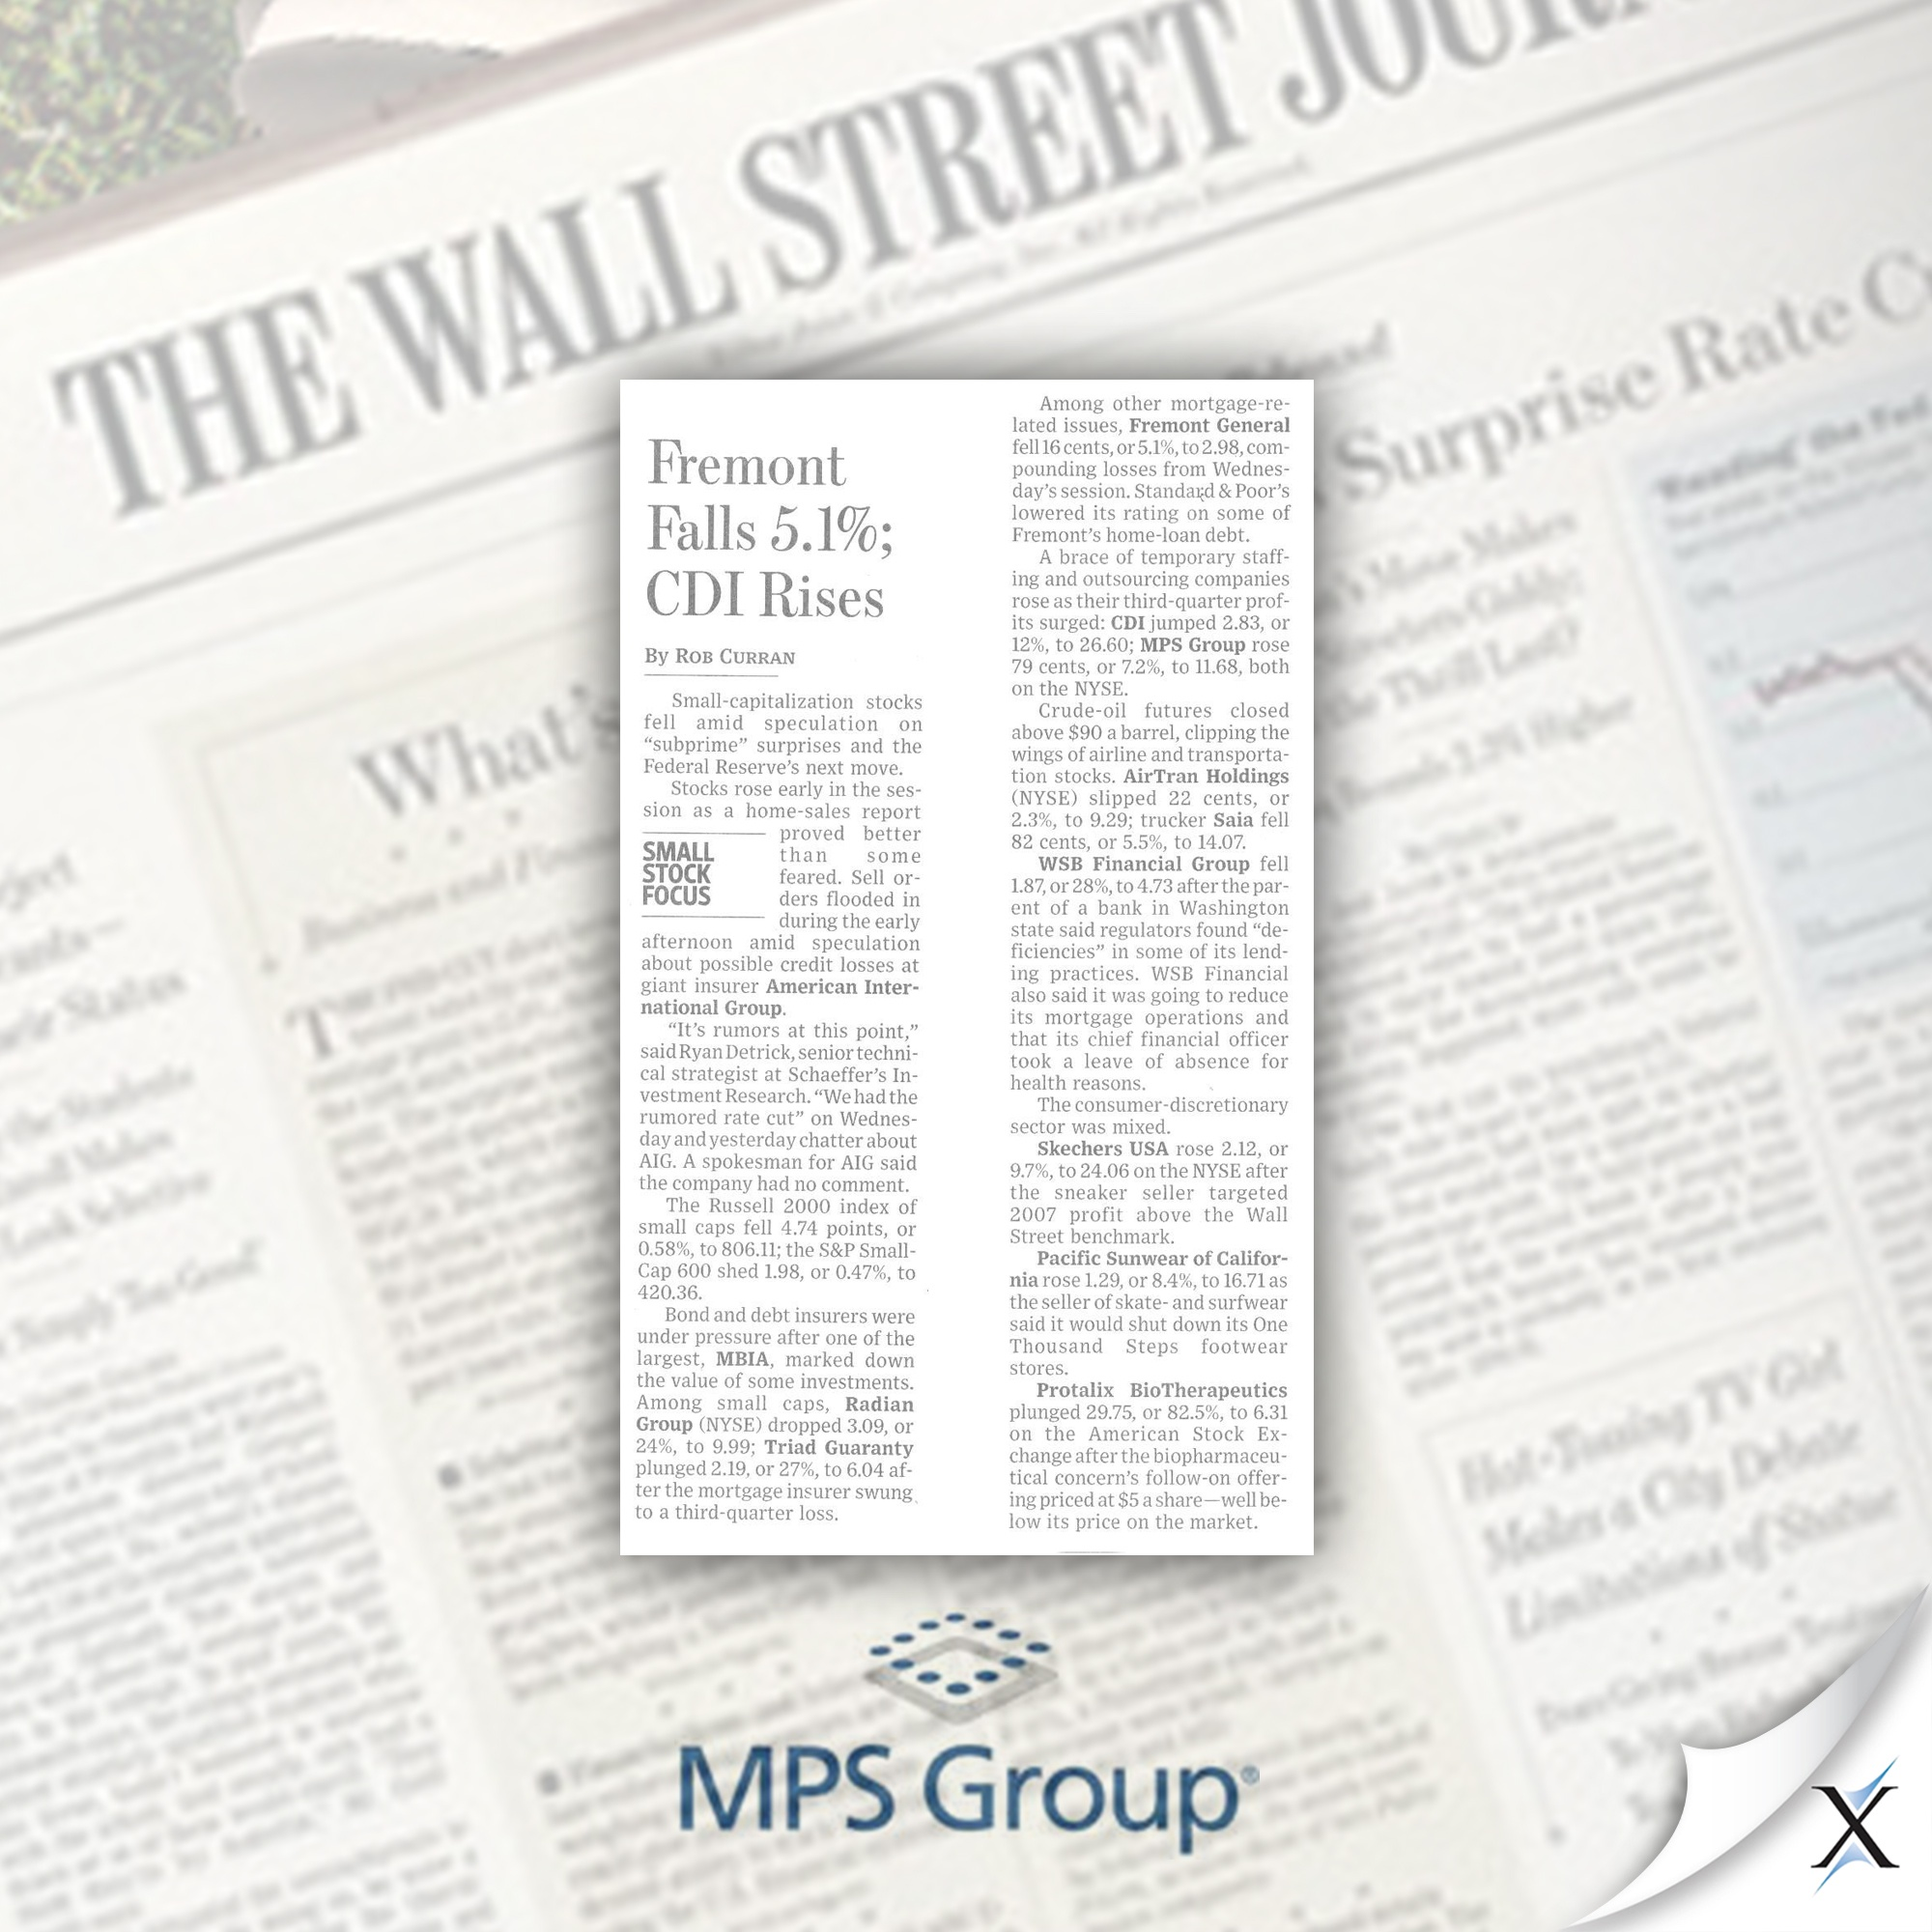 wall_street_journal_mps_group